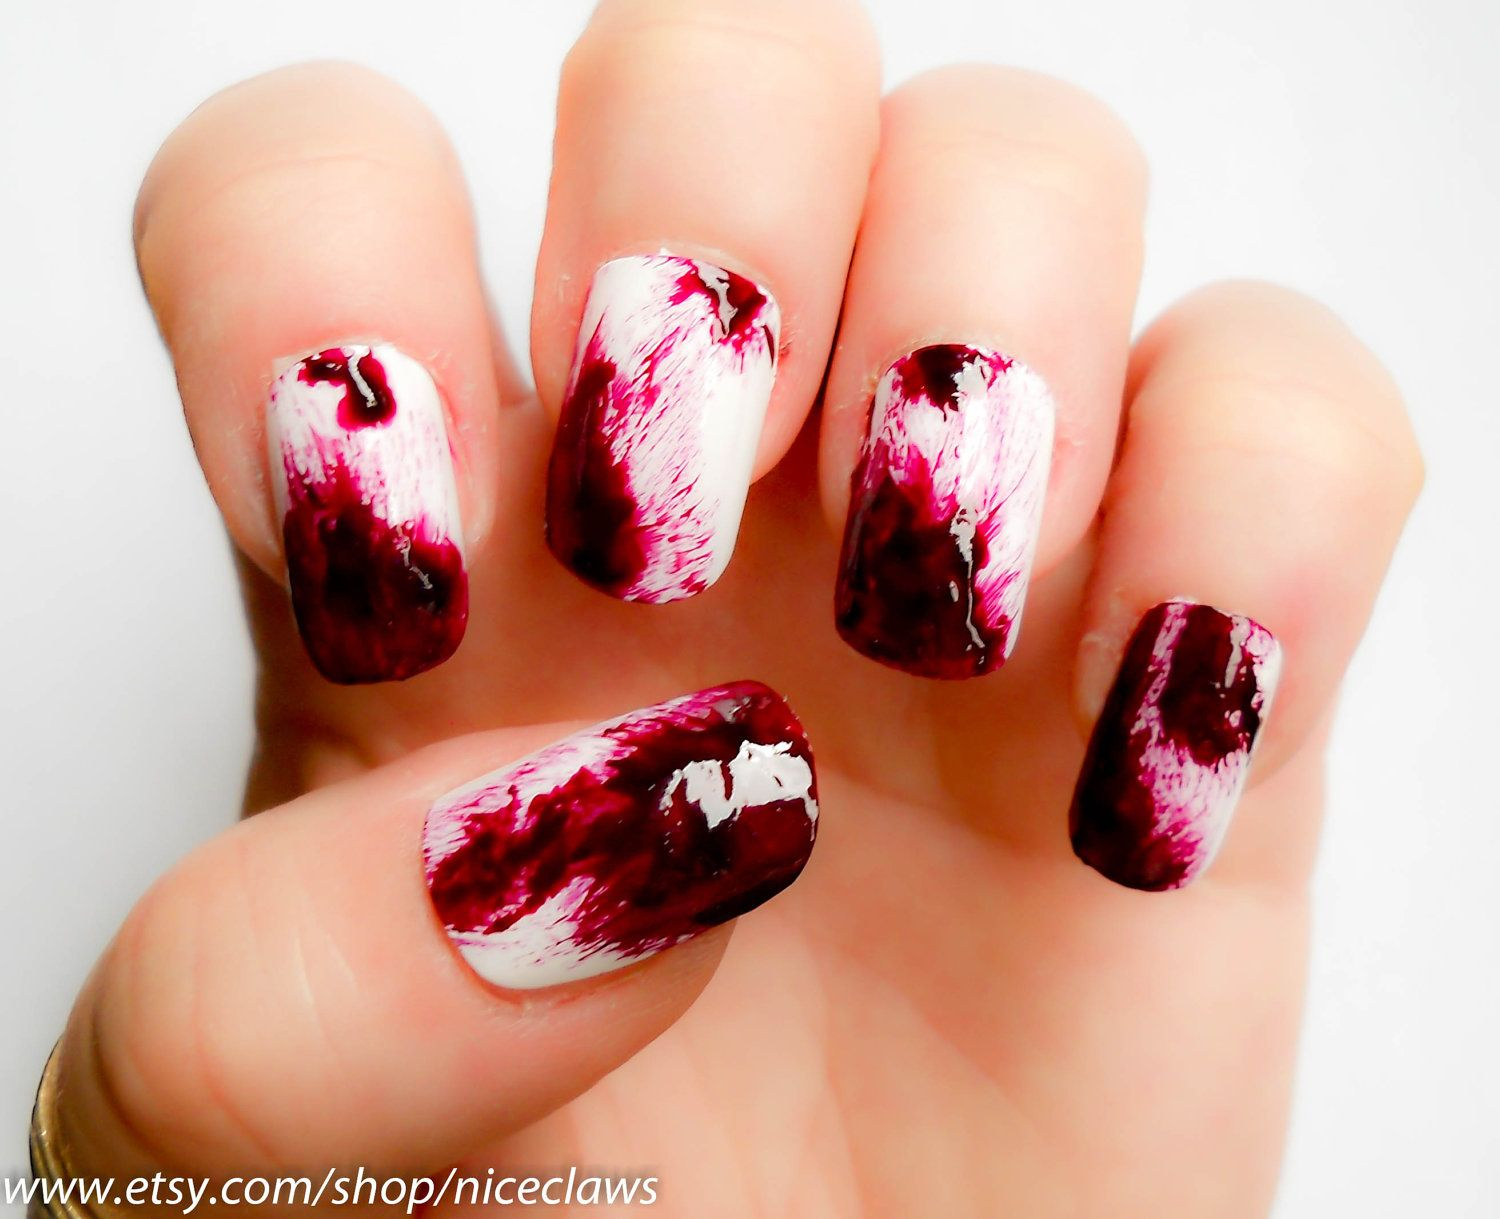 Blood Nails, Real Clot Effect Dexter Inspired Bloody Fake 3D Nails ...